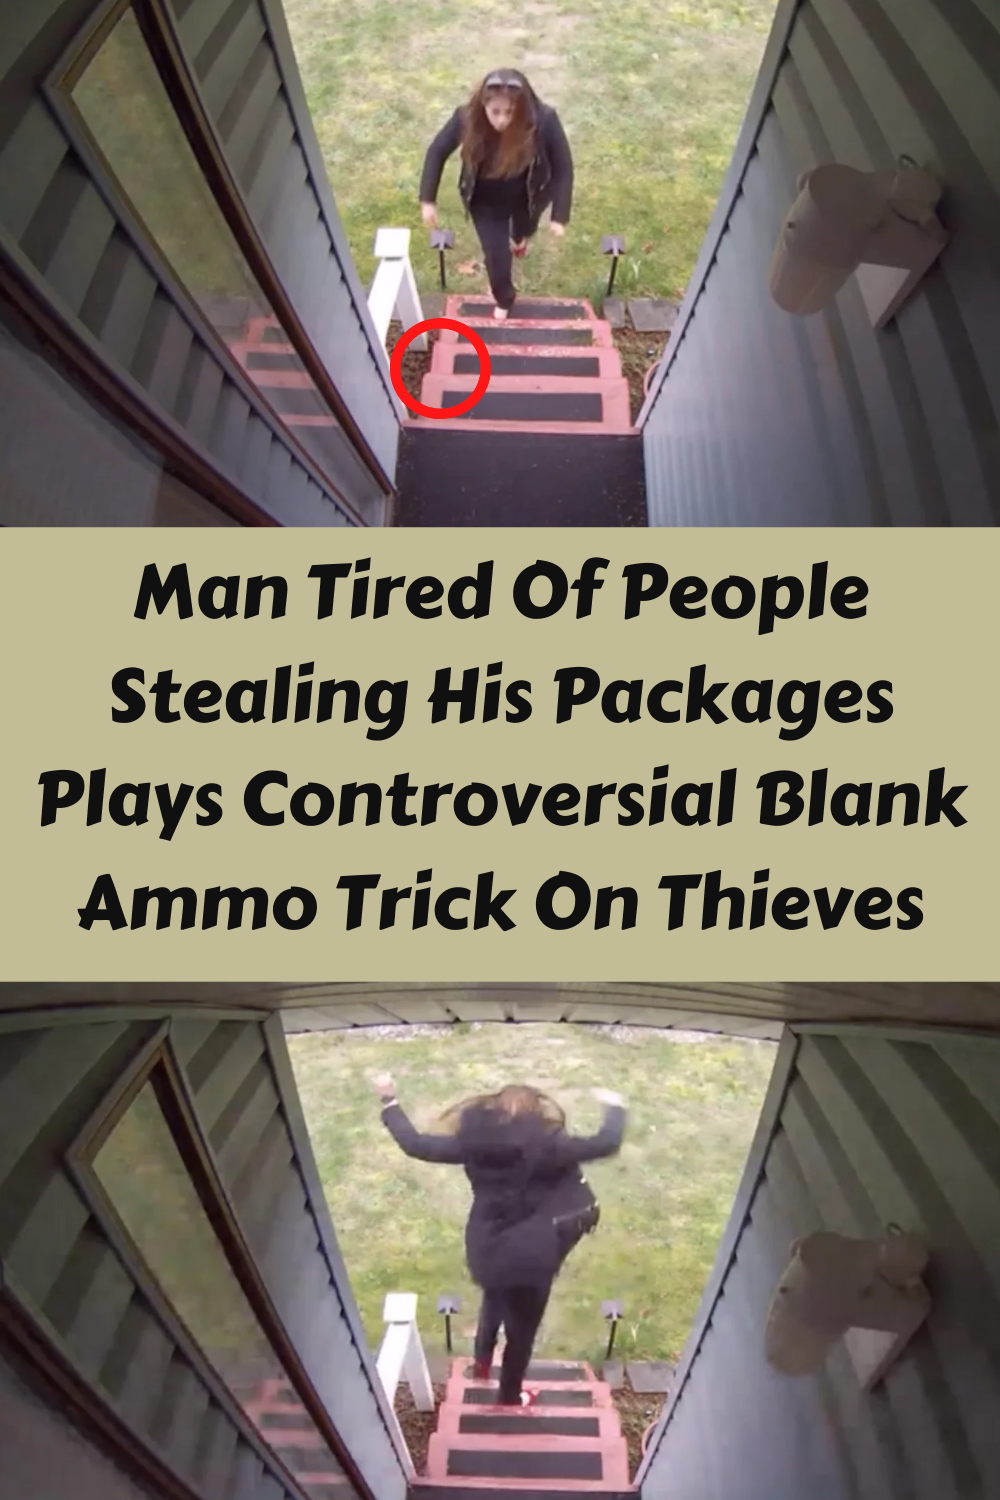 Man Tired Of People Stealing His Packages Plays Controversial Blank Ammo Trick On Thieves